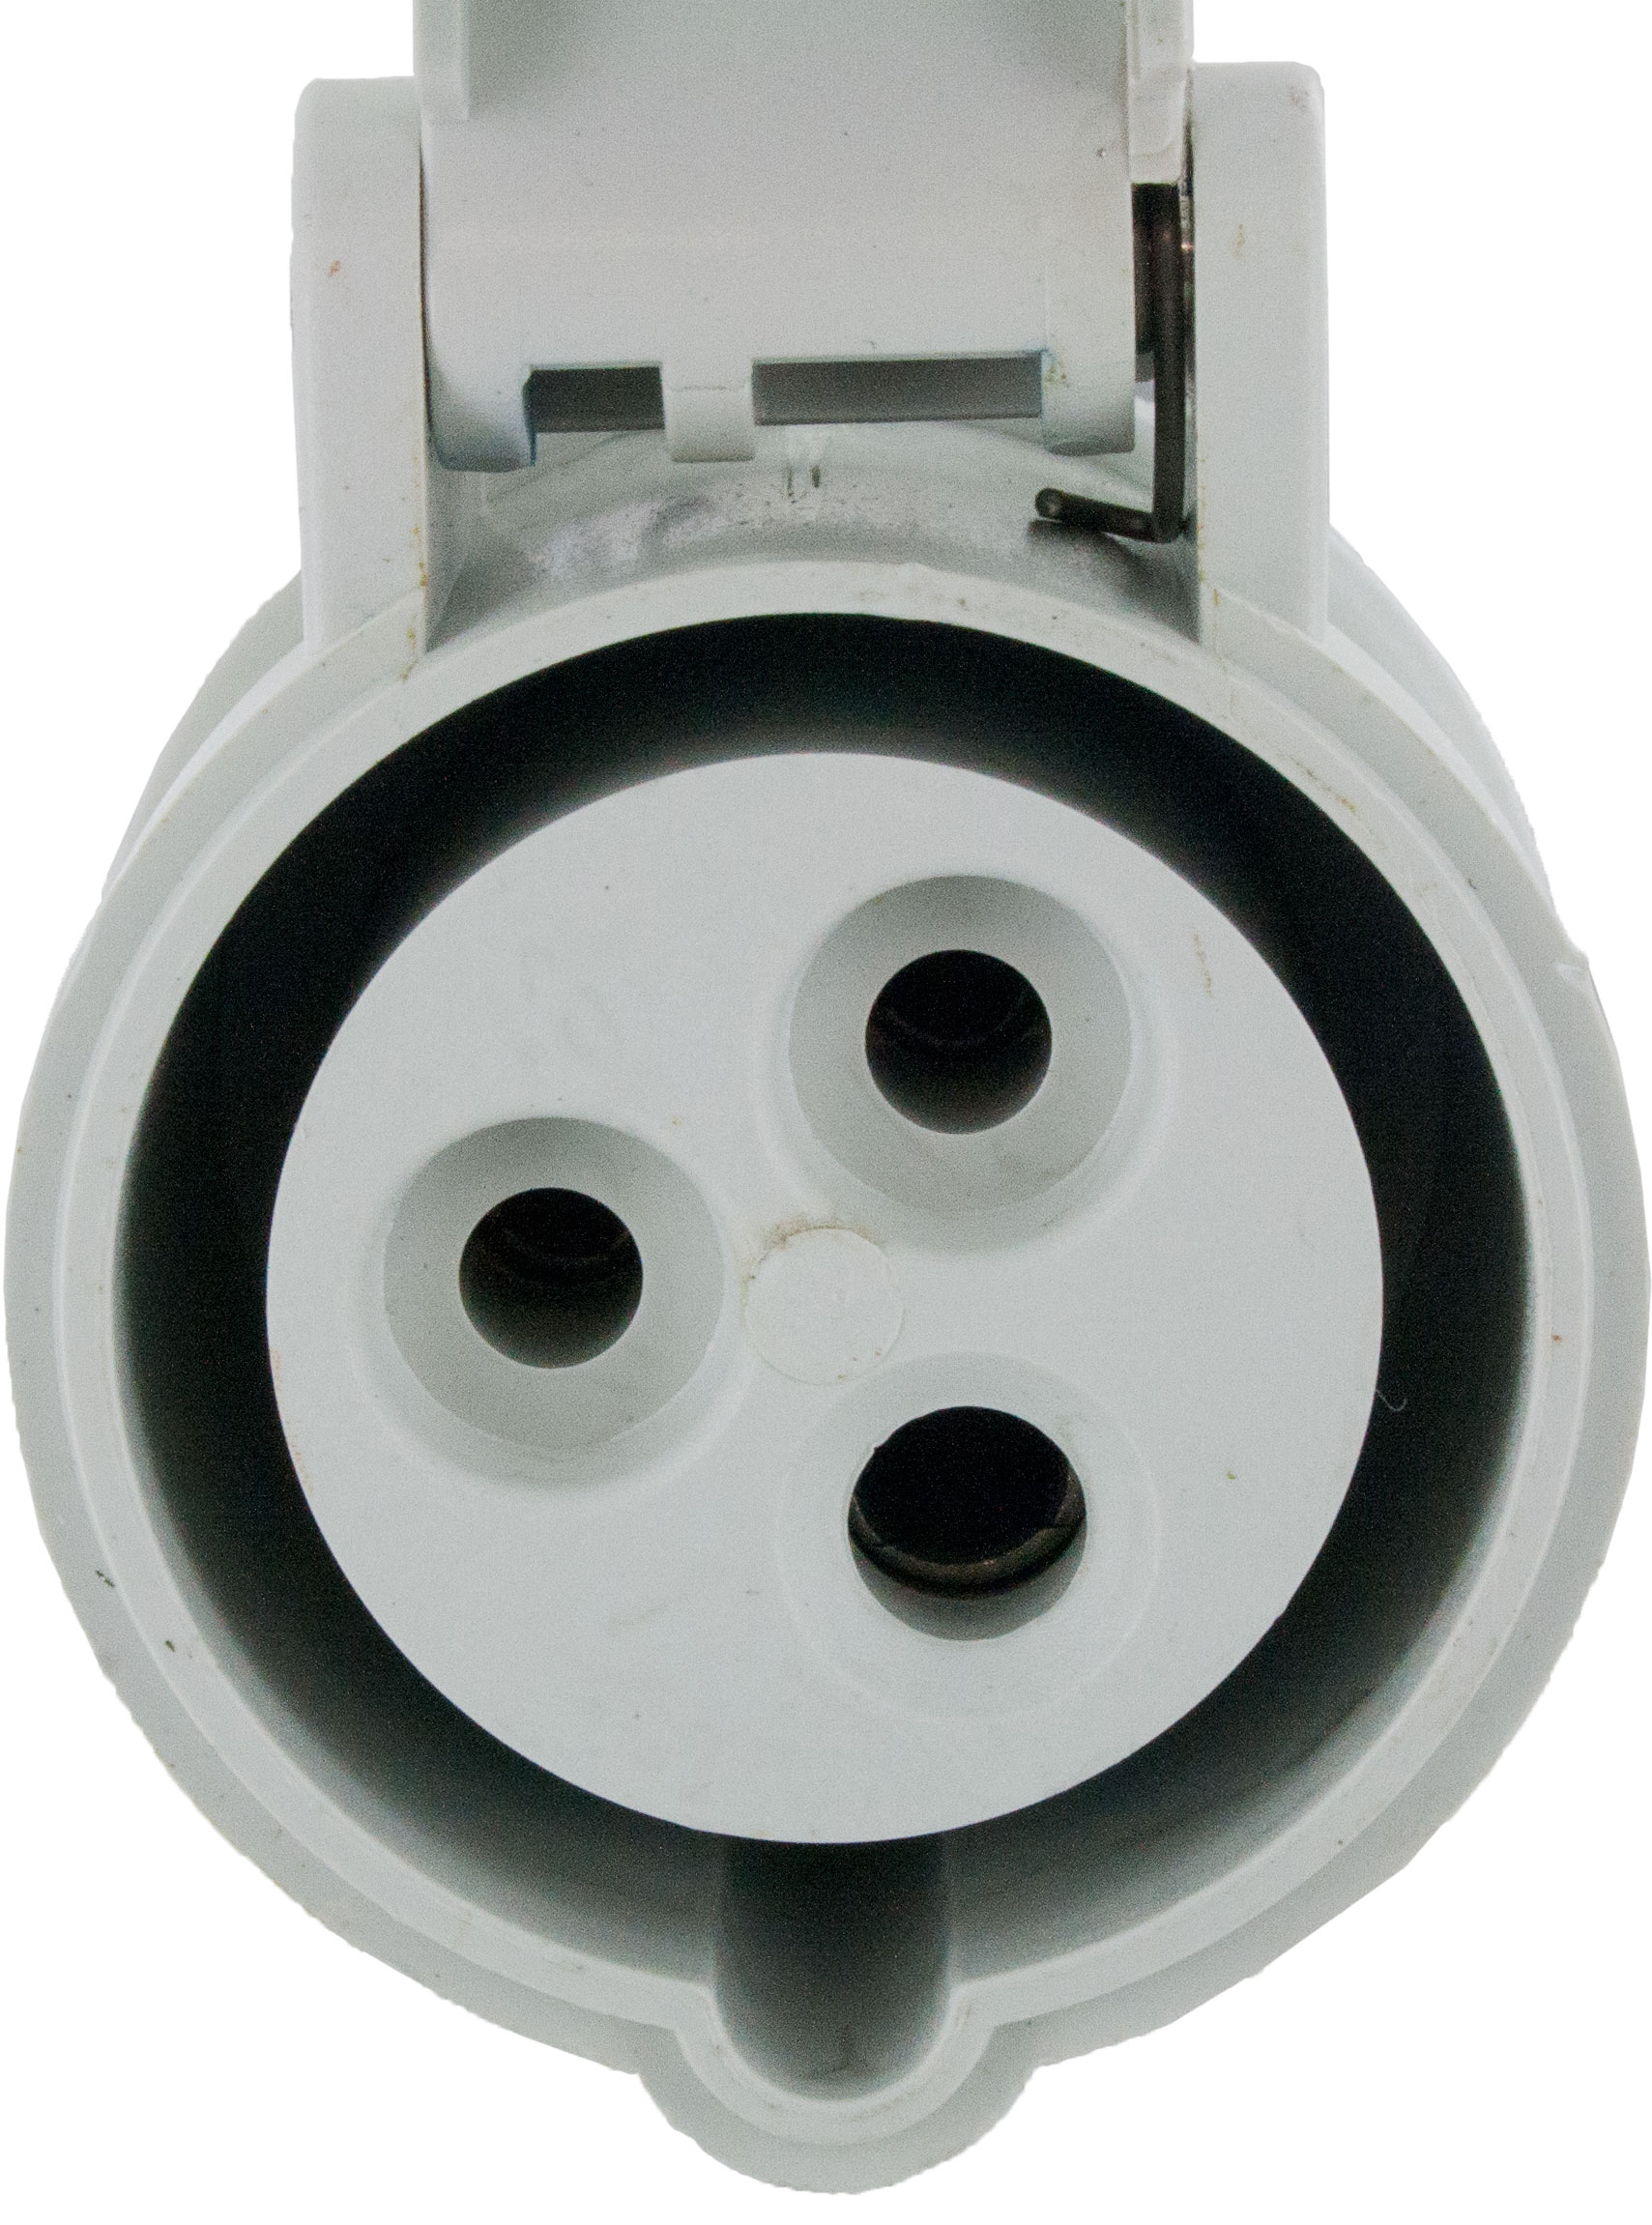 320C5S Pin And Sleeve Connector 20 Amp 2 Pole 3 Wire | ElecDirect